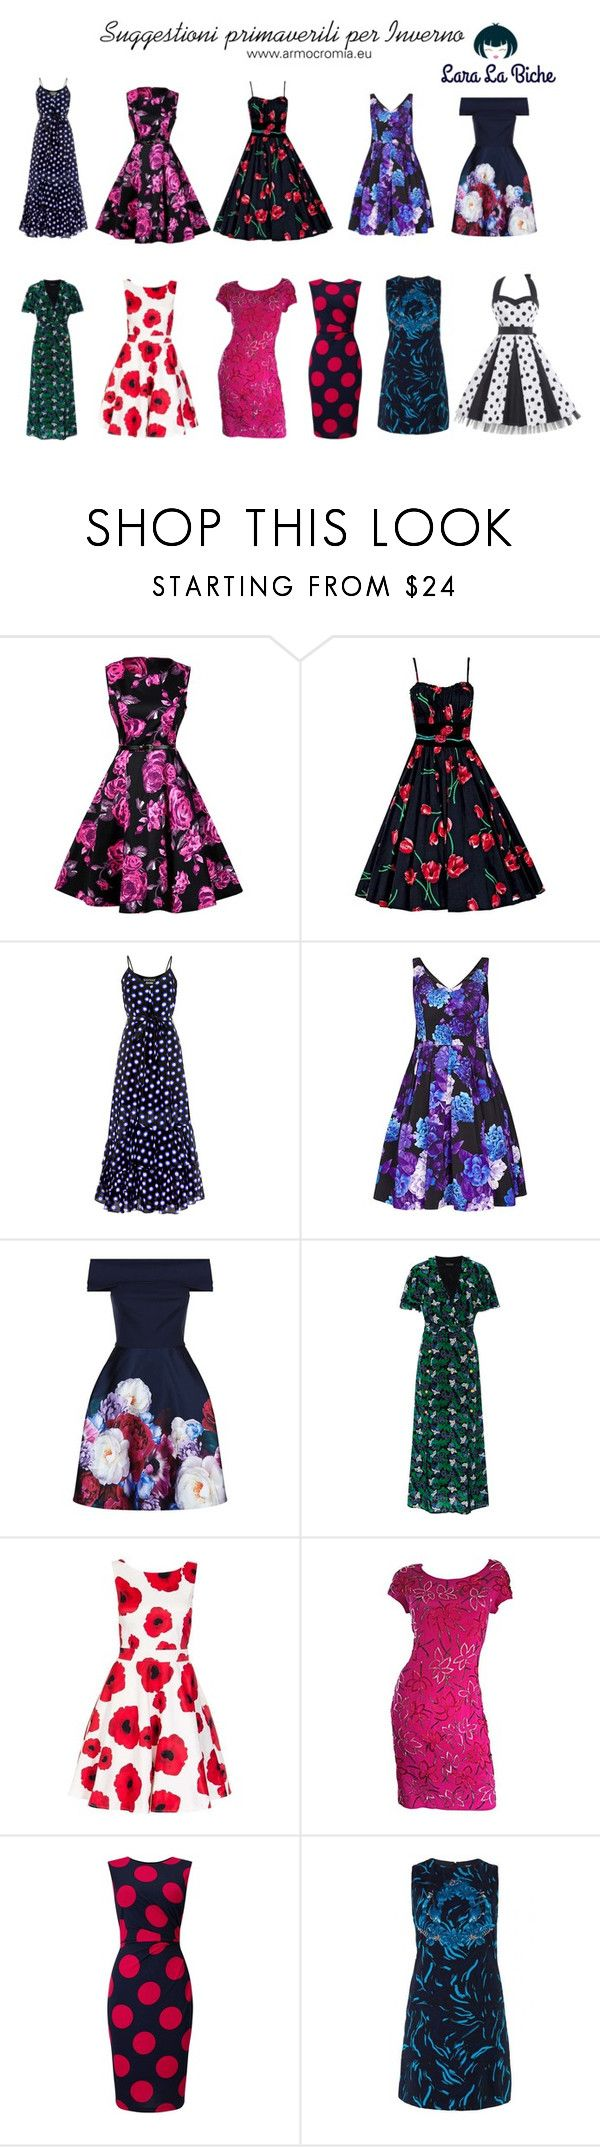 """""""suggestioni primaverili inverno"""" by laralabiche ❤ liked on Polyvore featuring Boutique Moschino, City Chic, Ted Baker, Saloni, Carmen Marc Valvo, Phase Eight and Versus"""